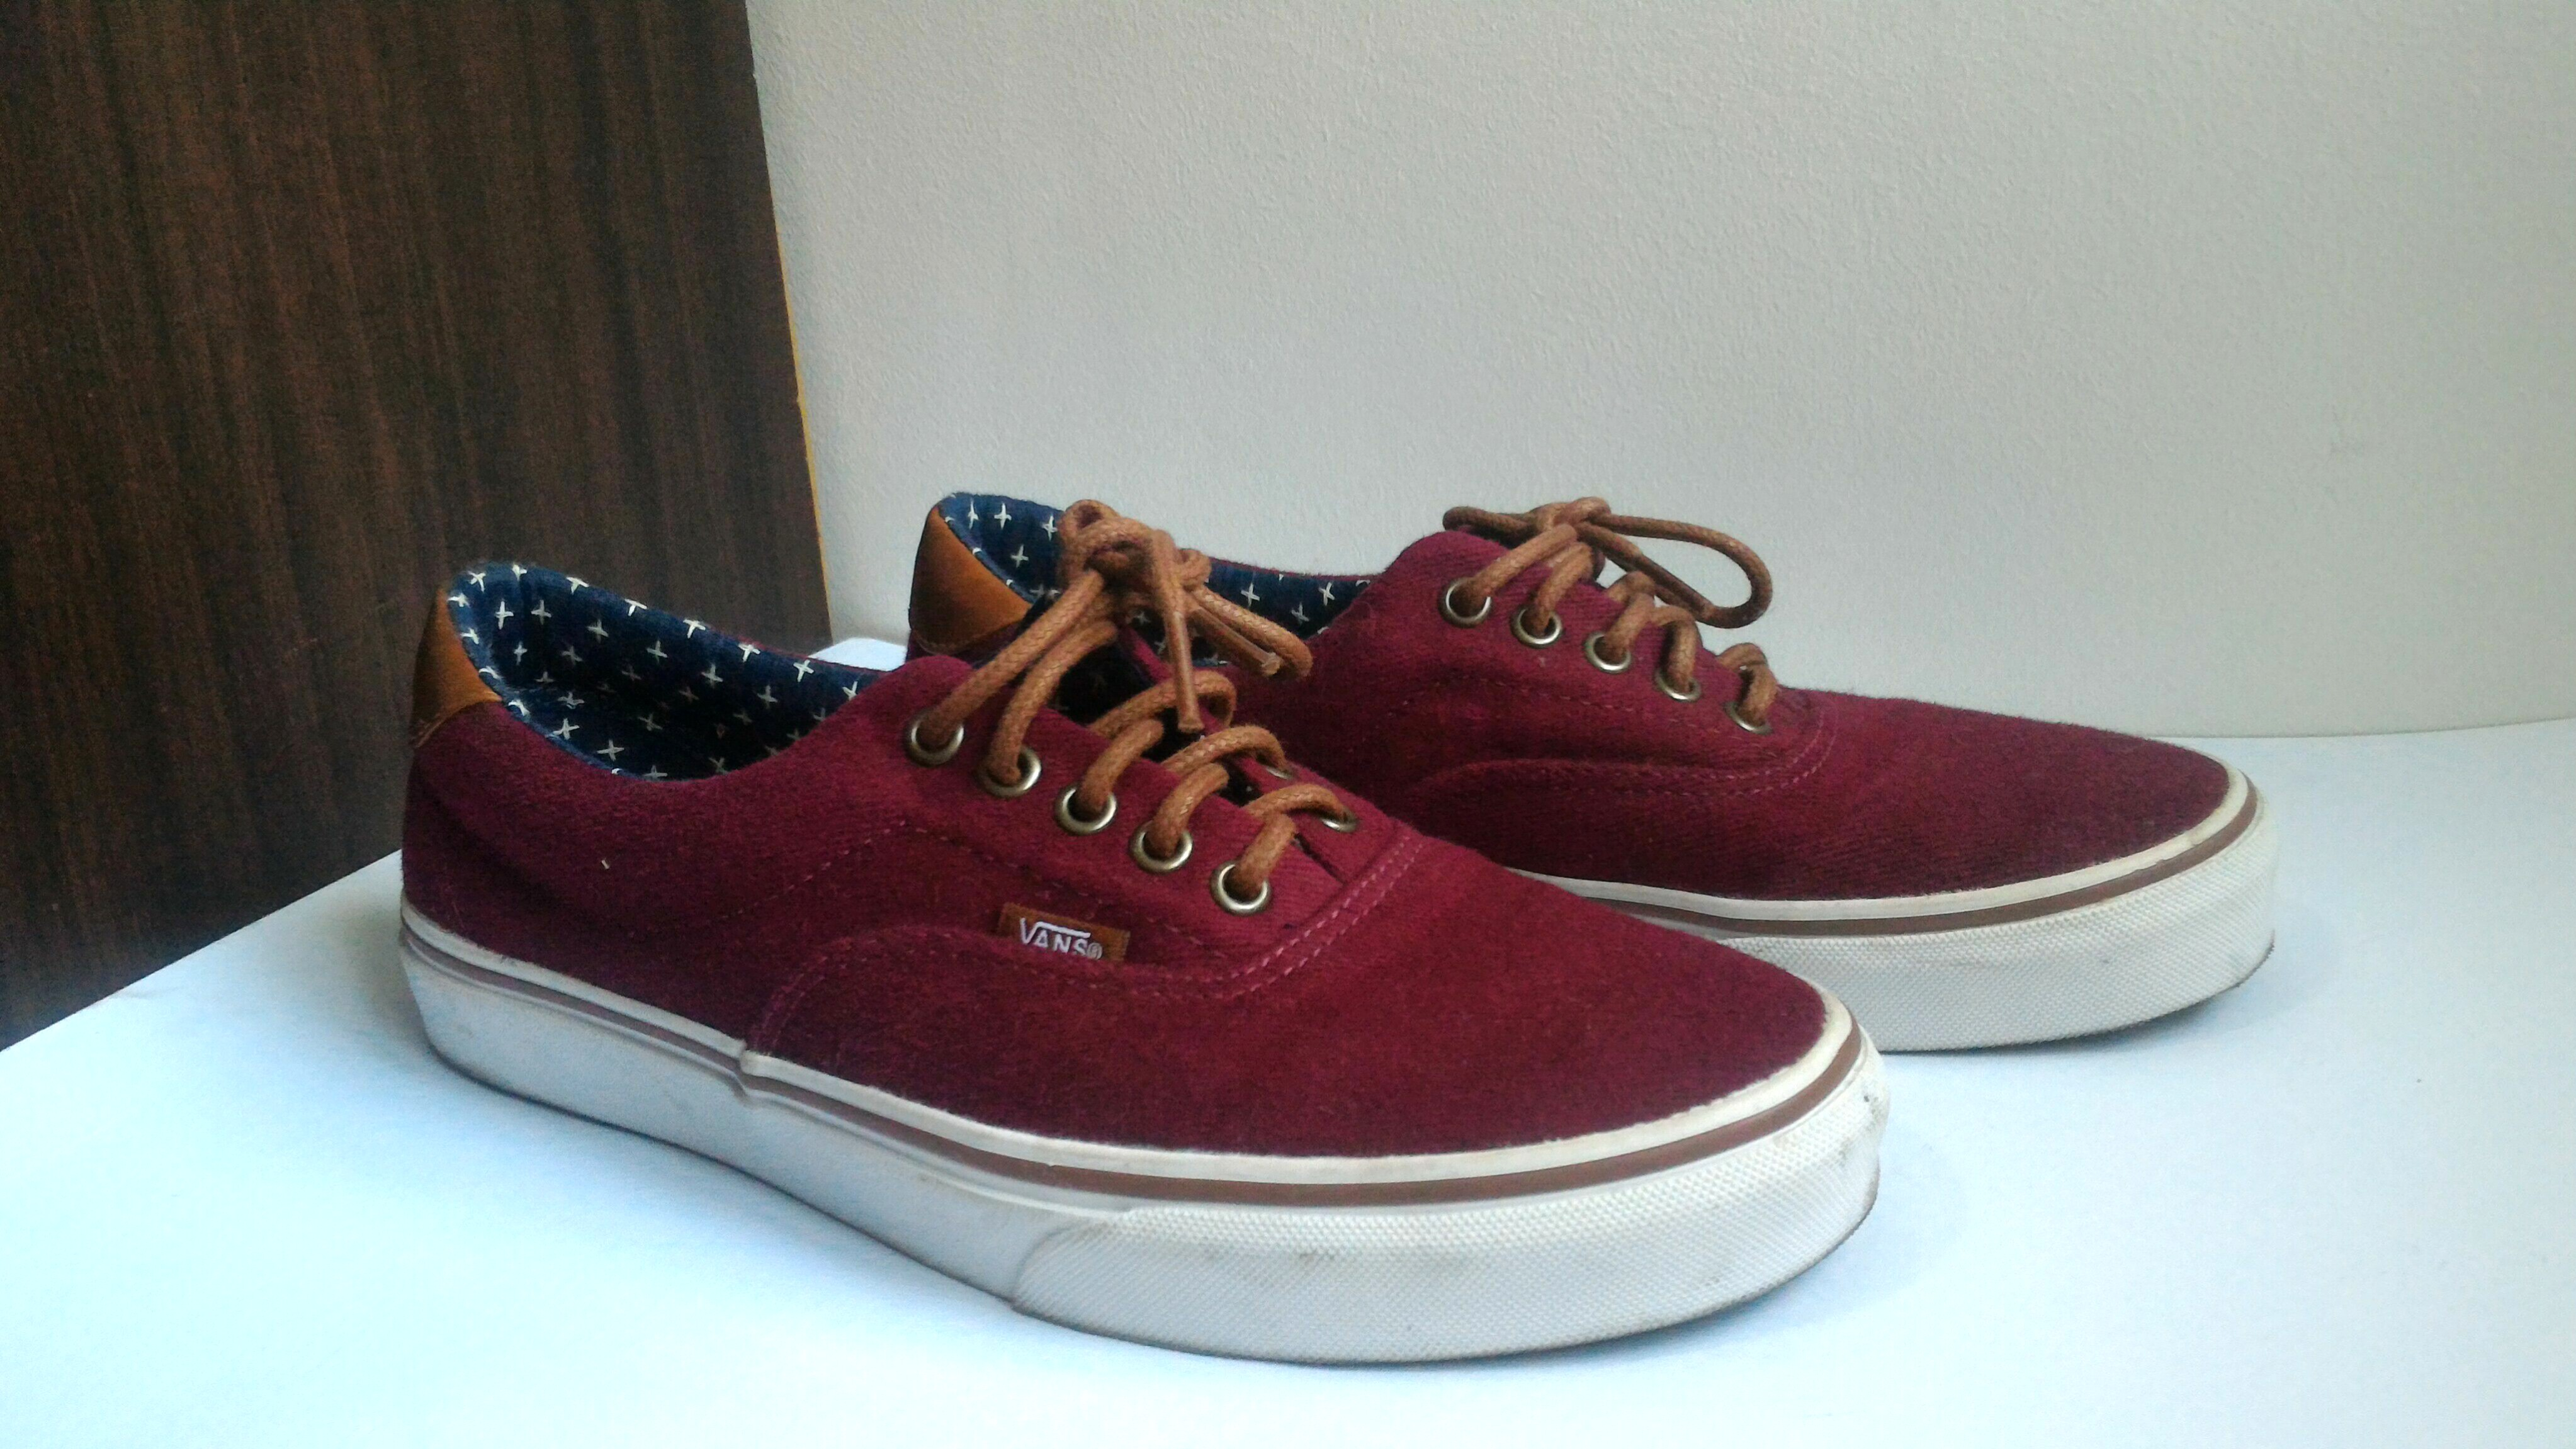 Vans Shoes (Maroon with Leather Brown) a952a4e46b3